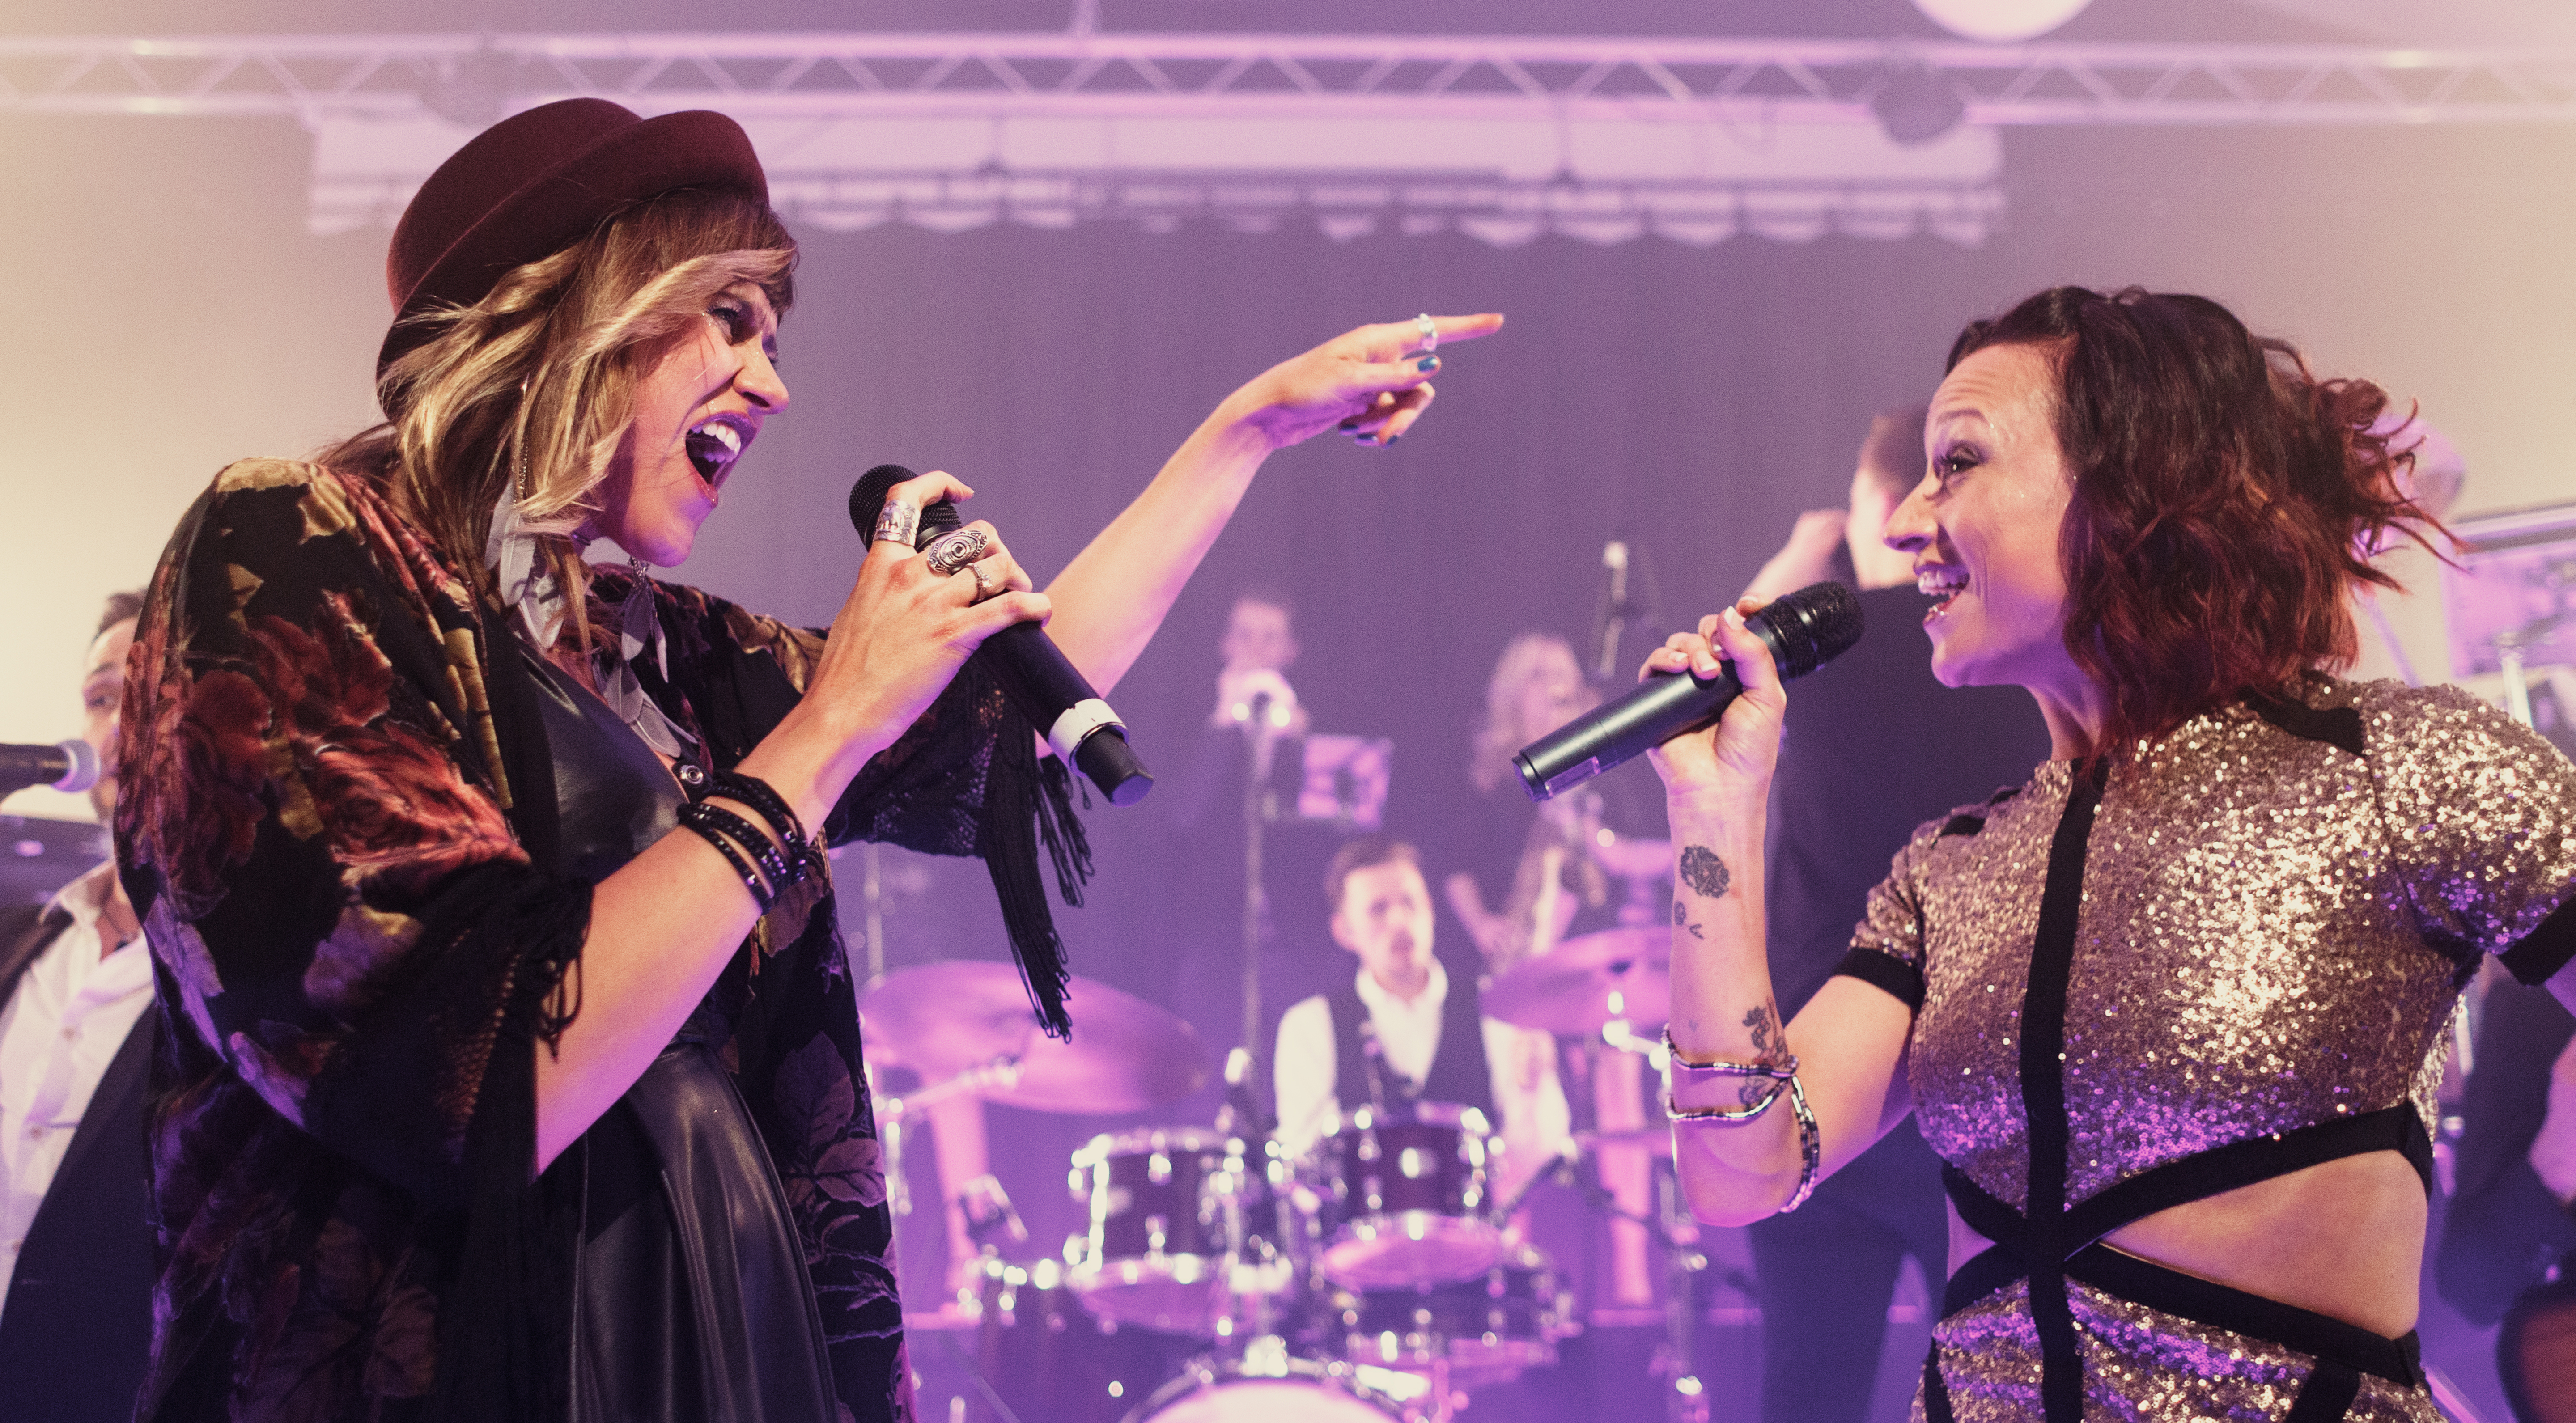 Two female vocalists from The Talent performing duet.